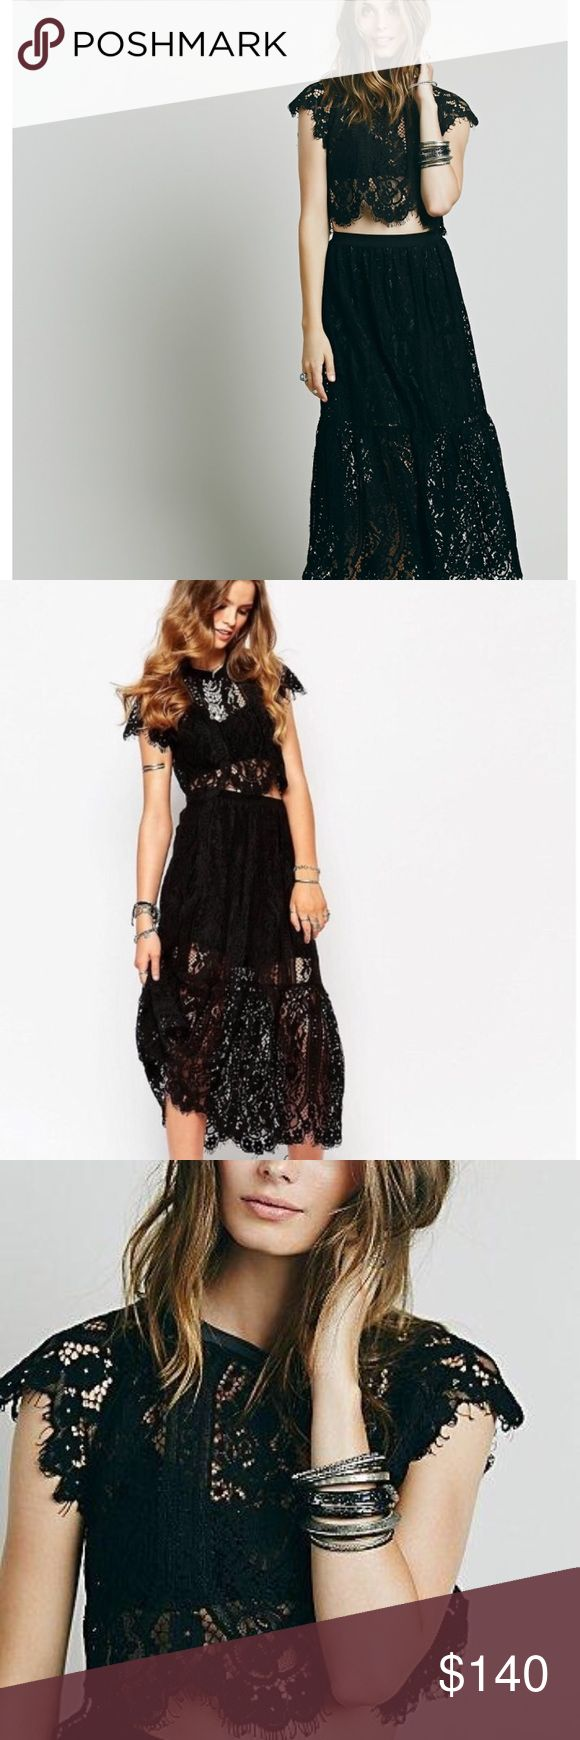 Free People Pocket Full of Posies Set Free people lace top and skirt set. Size 4. Delicate sheer lace crop top set with rounded neck and scalloped trim. Drop waist maxi skirt. Lined with half slip. Sold out style online. Last photo taken from free people gallery. Free People Dresses Maxi